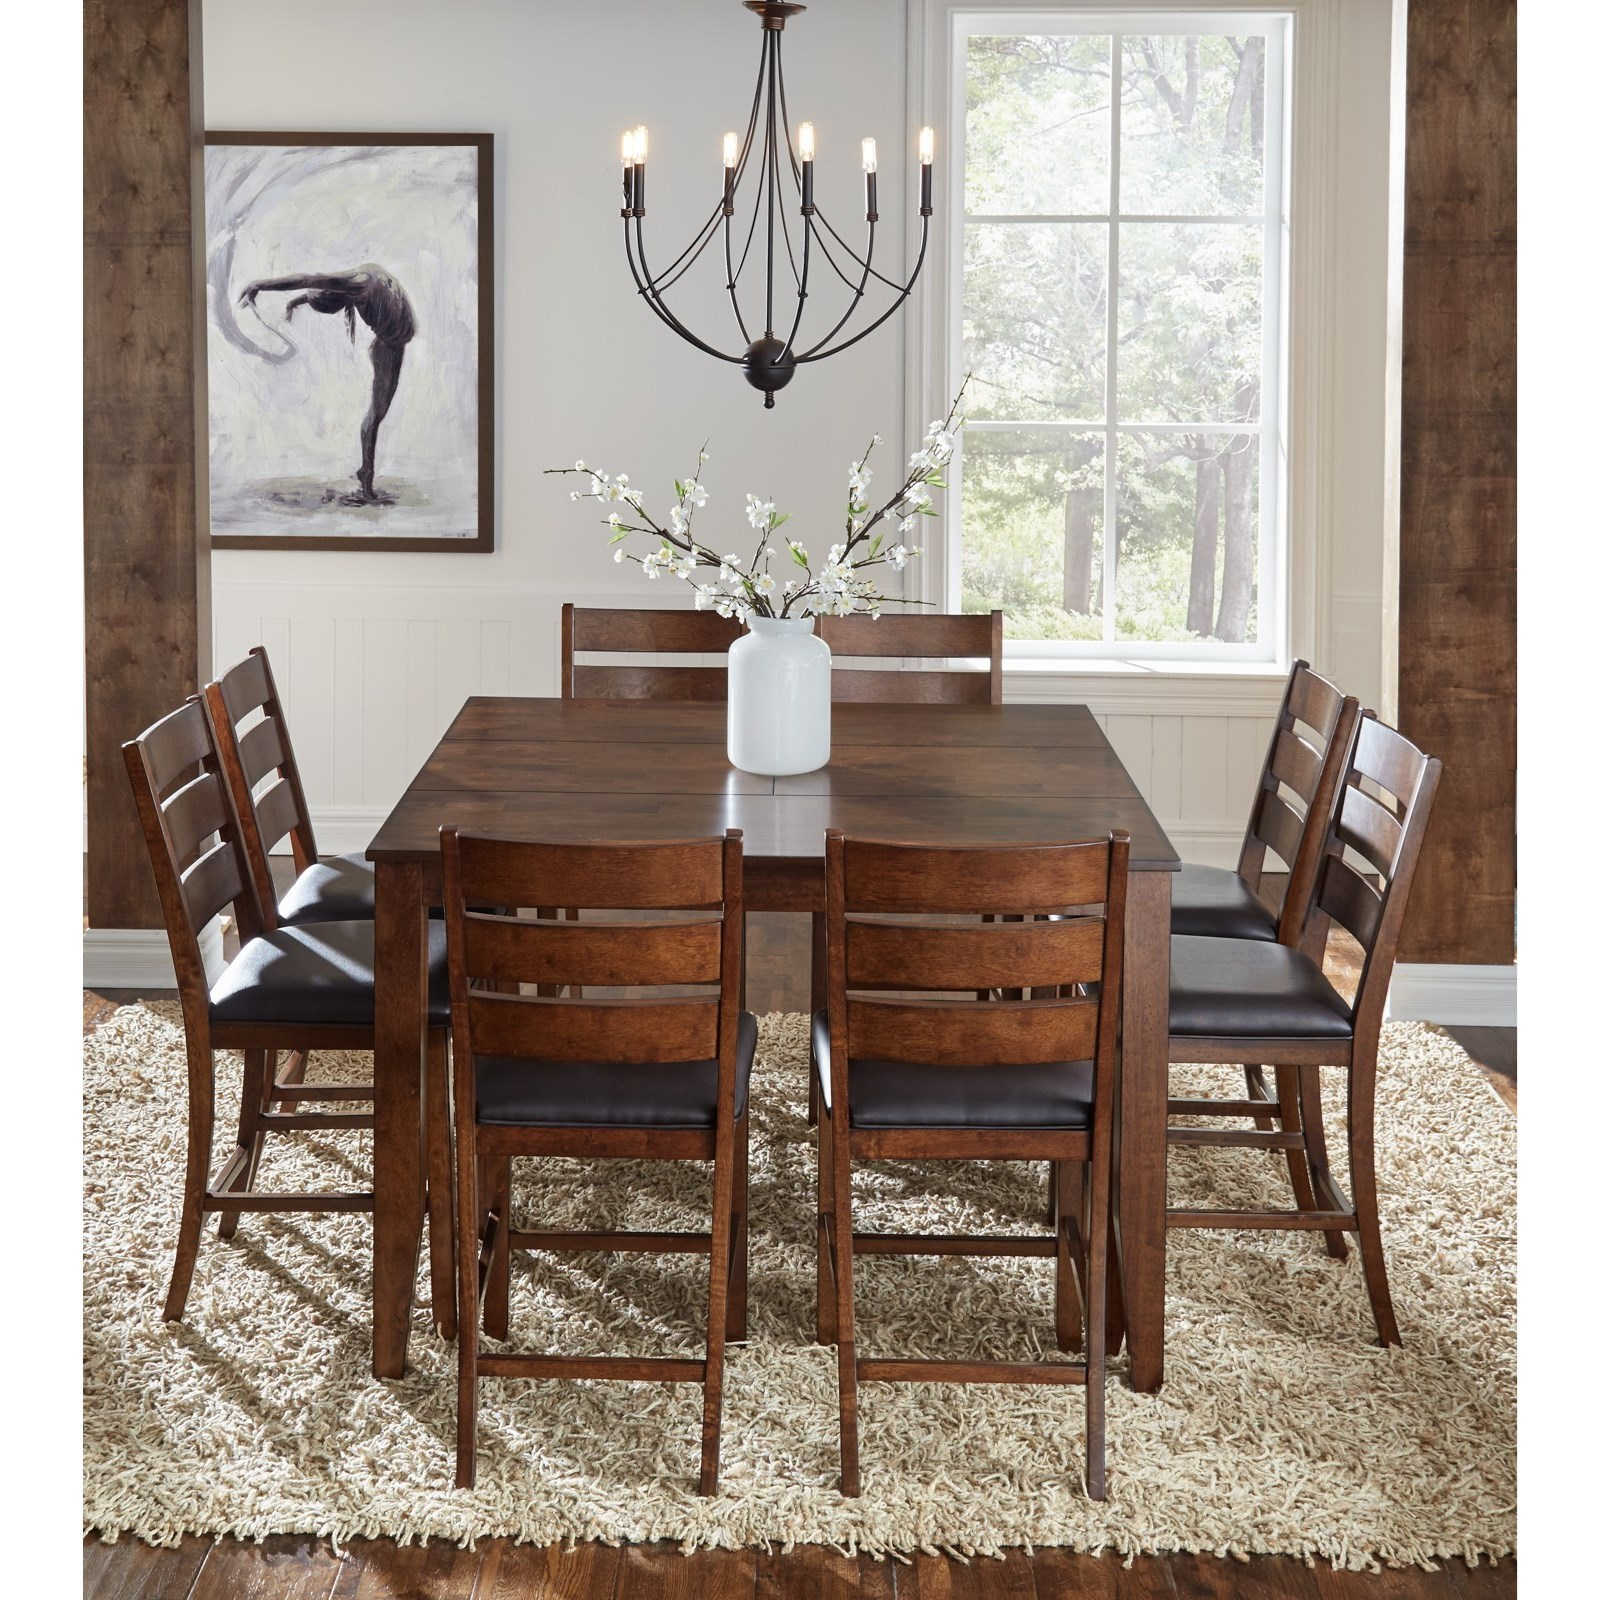 Dining Room Tables With Leaves: AAmerica Mason Rectangular Butterfly Leaf Dining Table